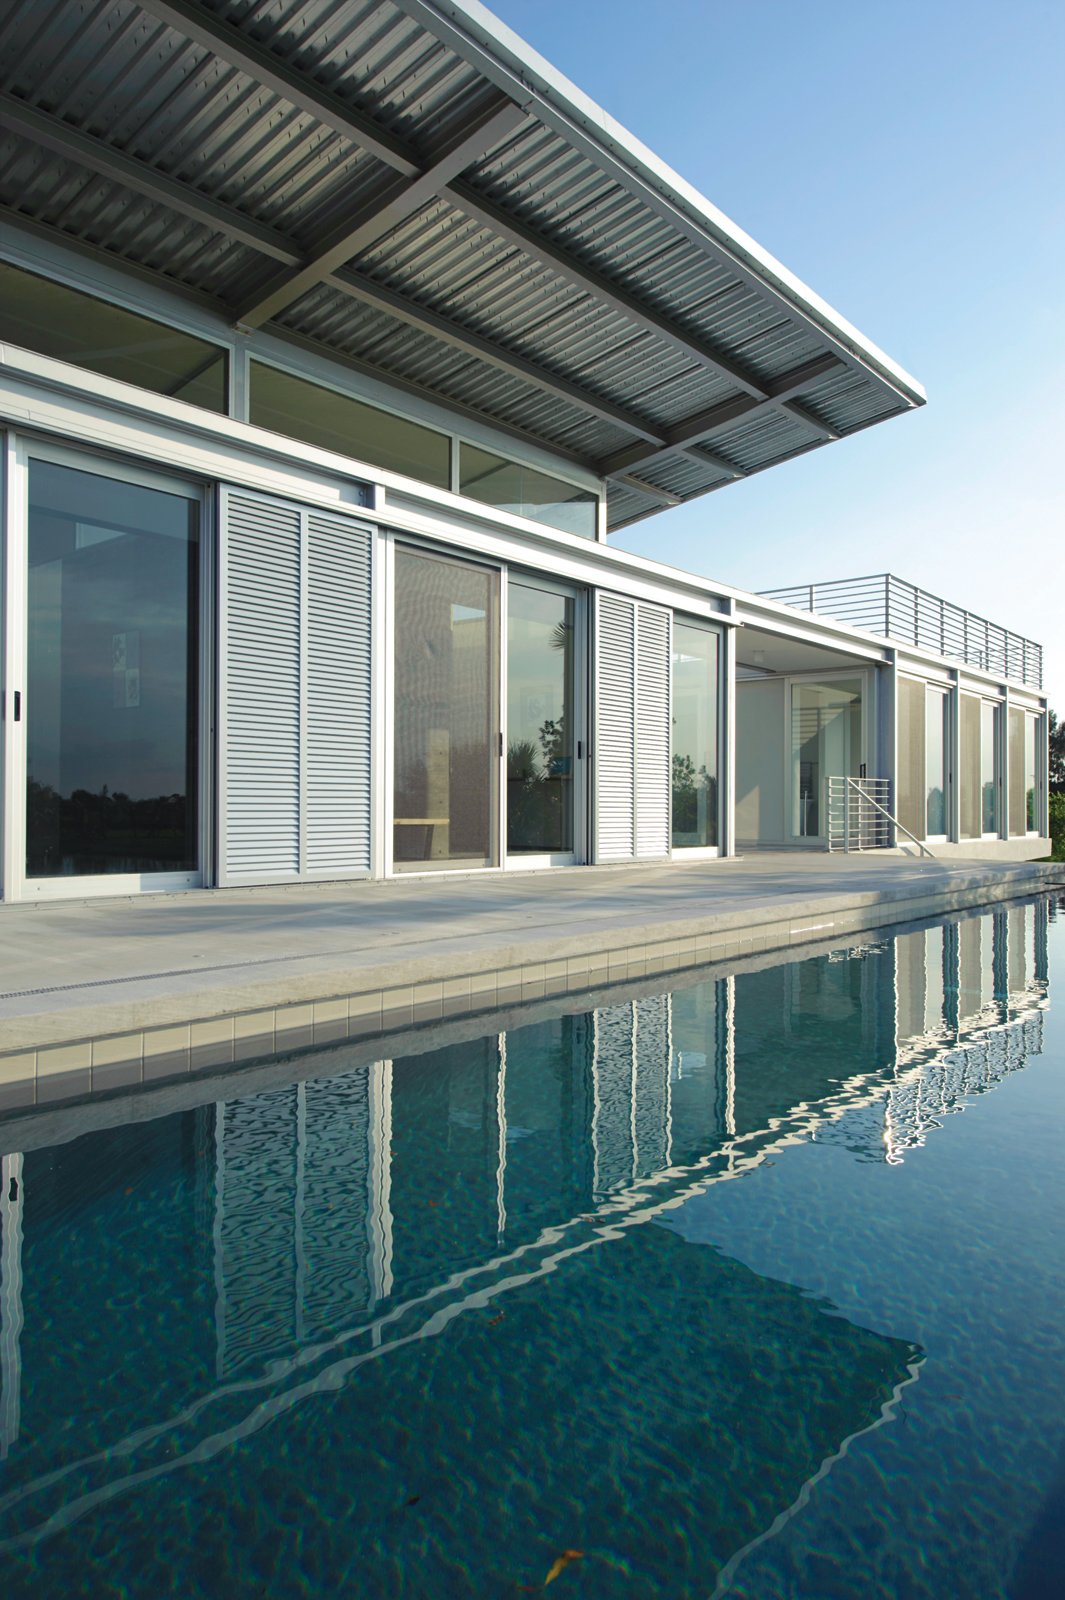 """In Hobe Sound, Florida, this passively cooled residence overlooking a custom-built water-ski circuit is hardly par for the course. """"The home is really driven by exposure to the landscape,"""" says architect Scott Hughes. Read the full story here.  Homes with a Waterfront View by Diana Budds from Ski for All"""